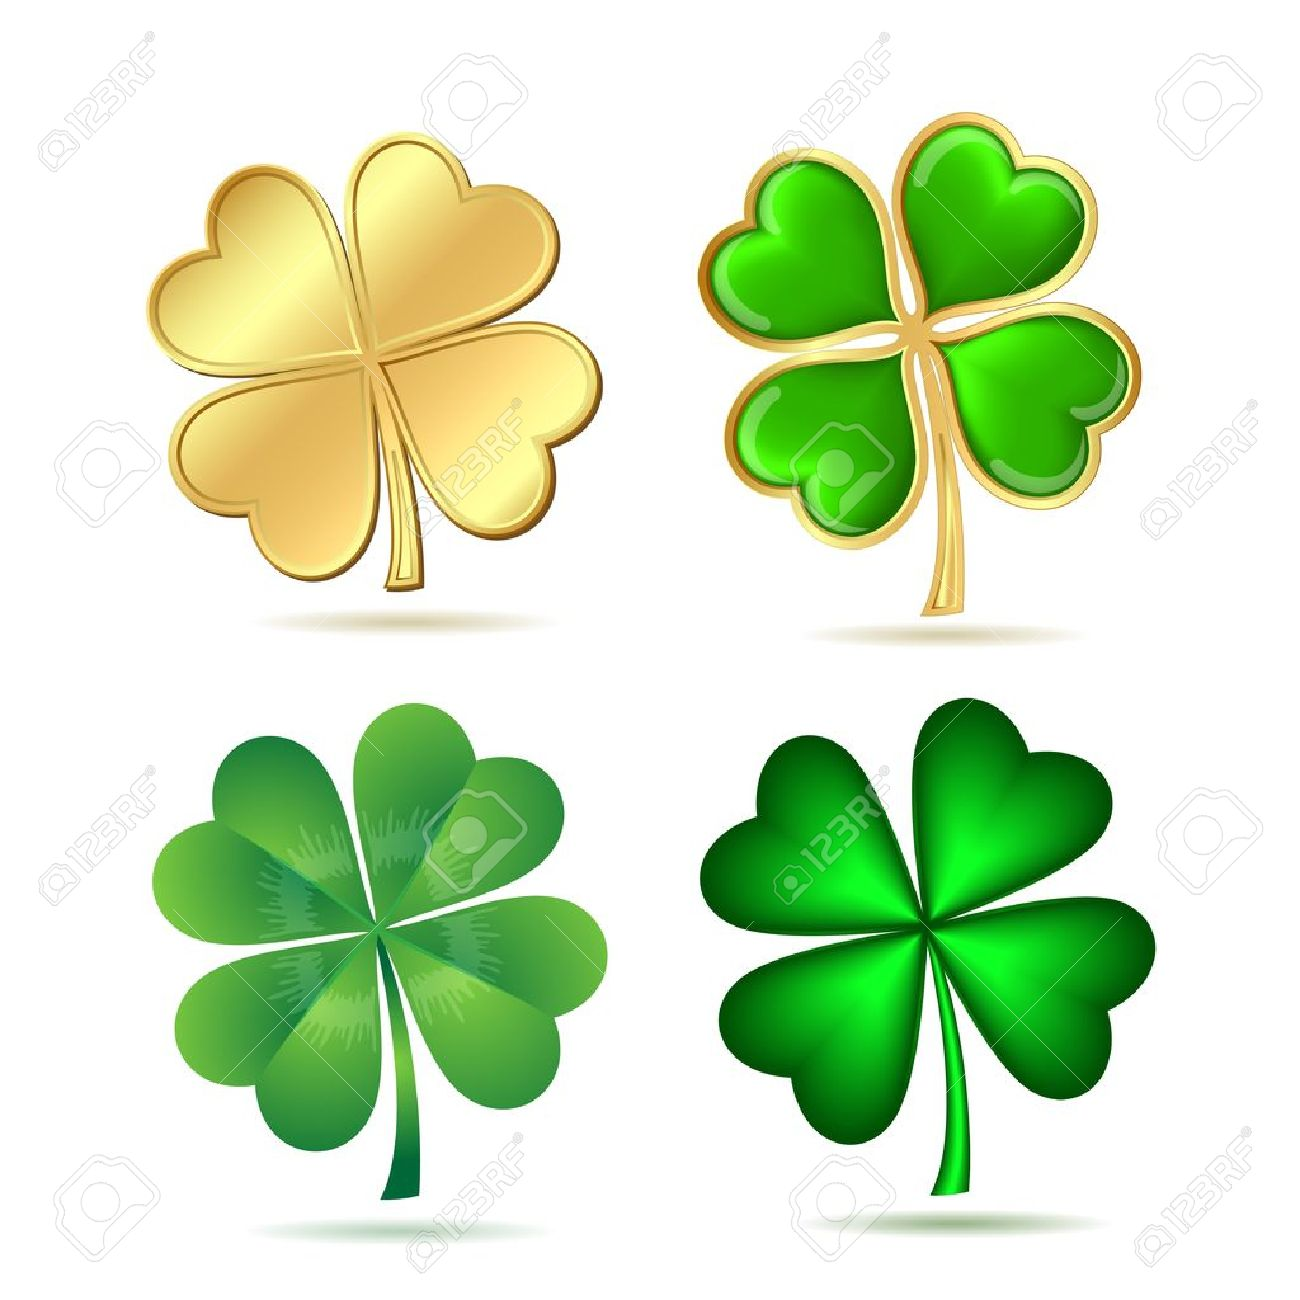 9,247 Clover Flower Stock Vector Illustration And Royalty Free.